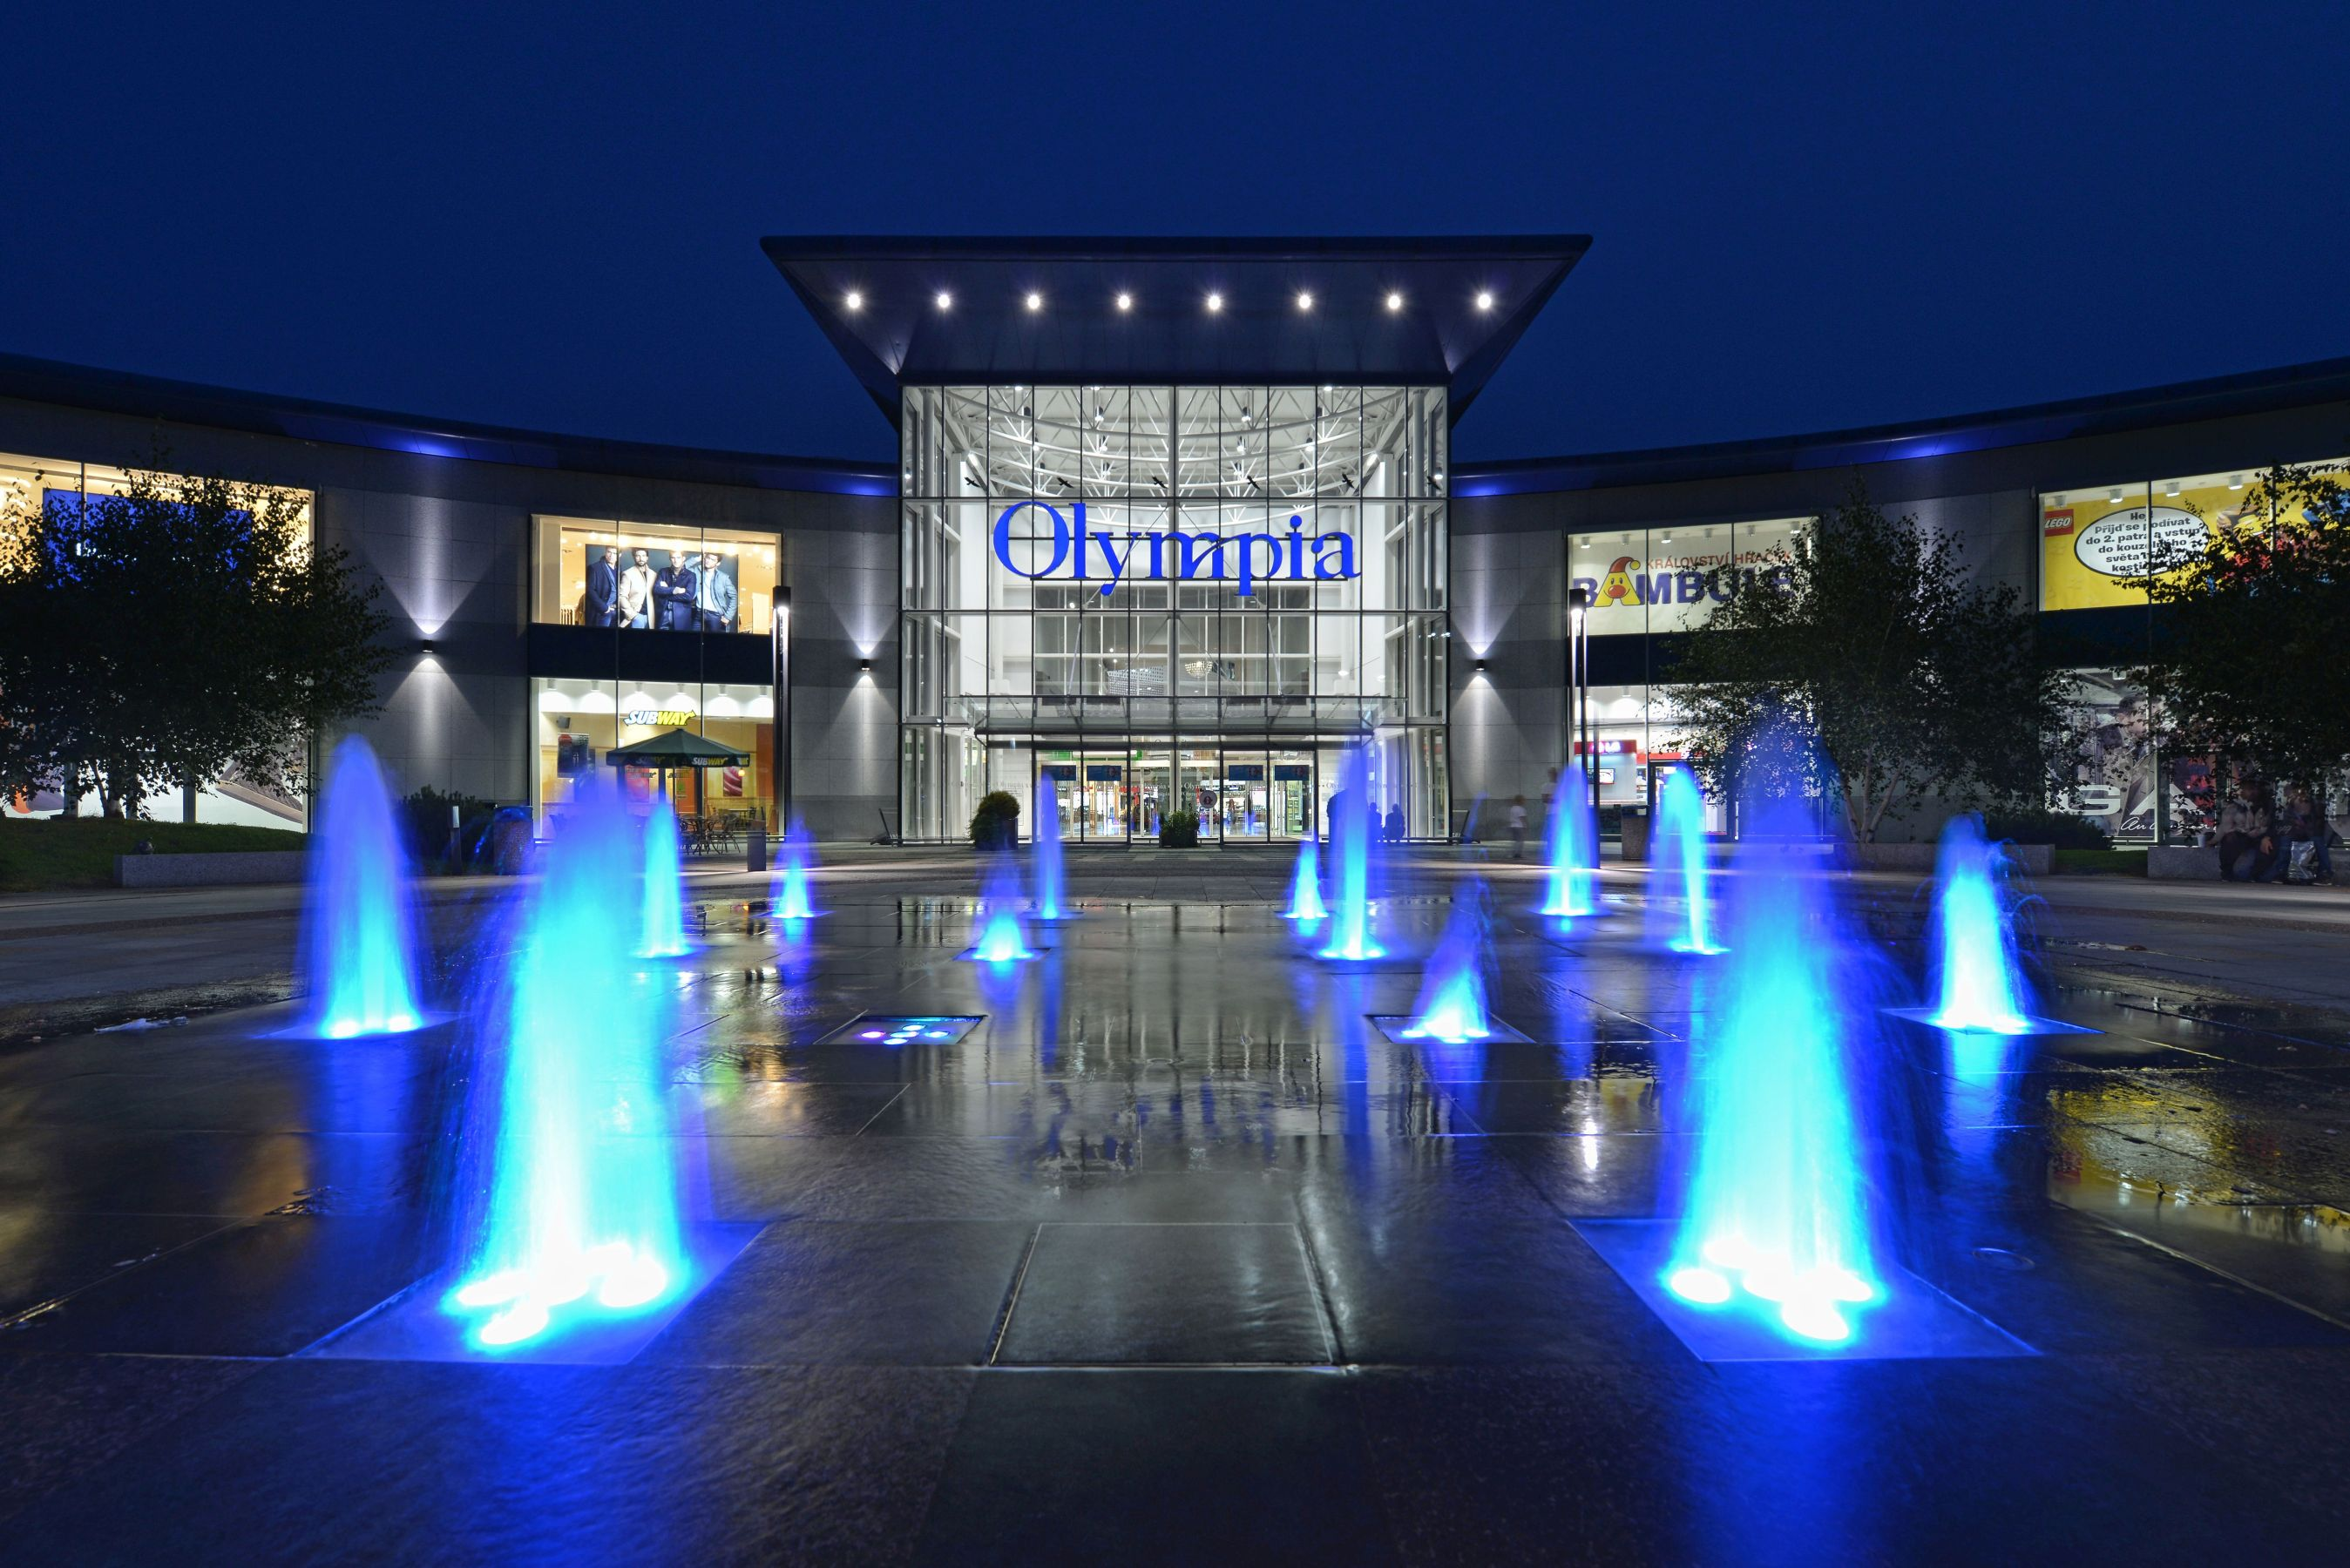 Olympia shopping centre in Brno